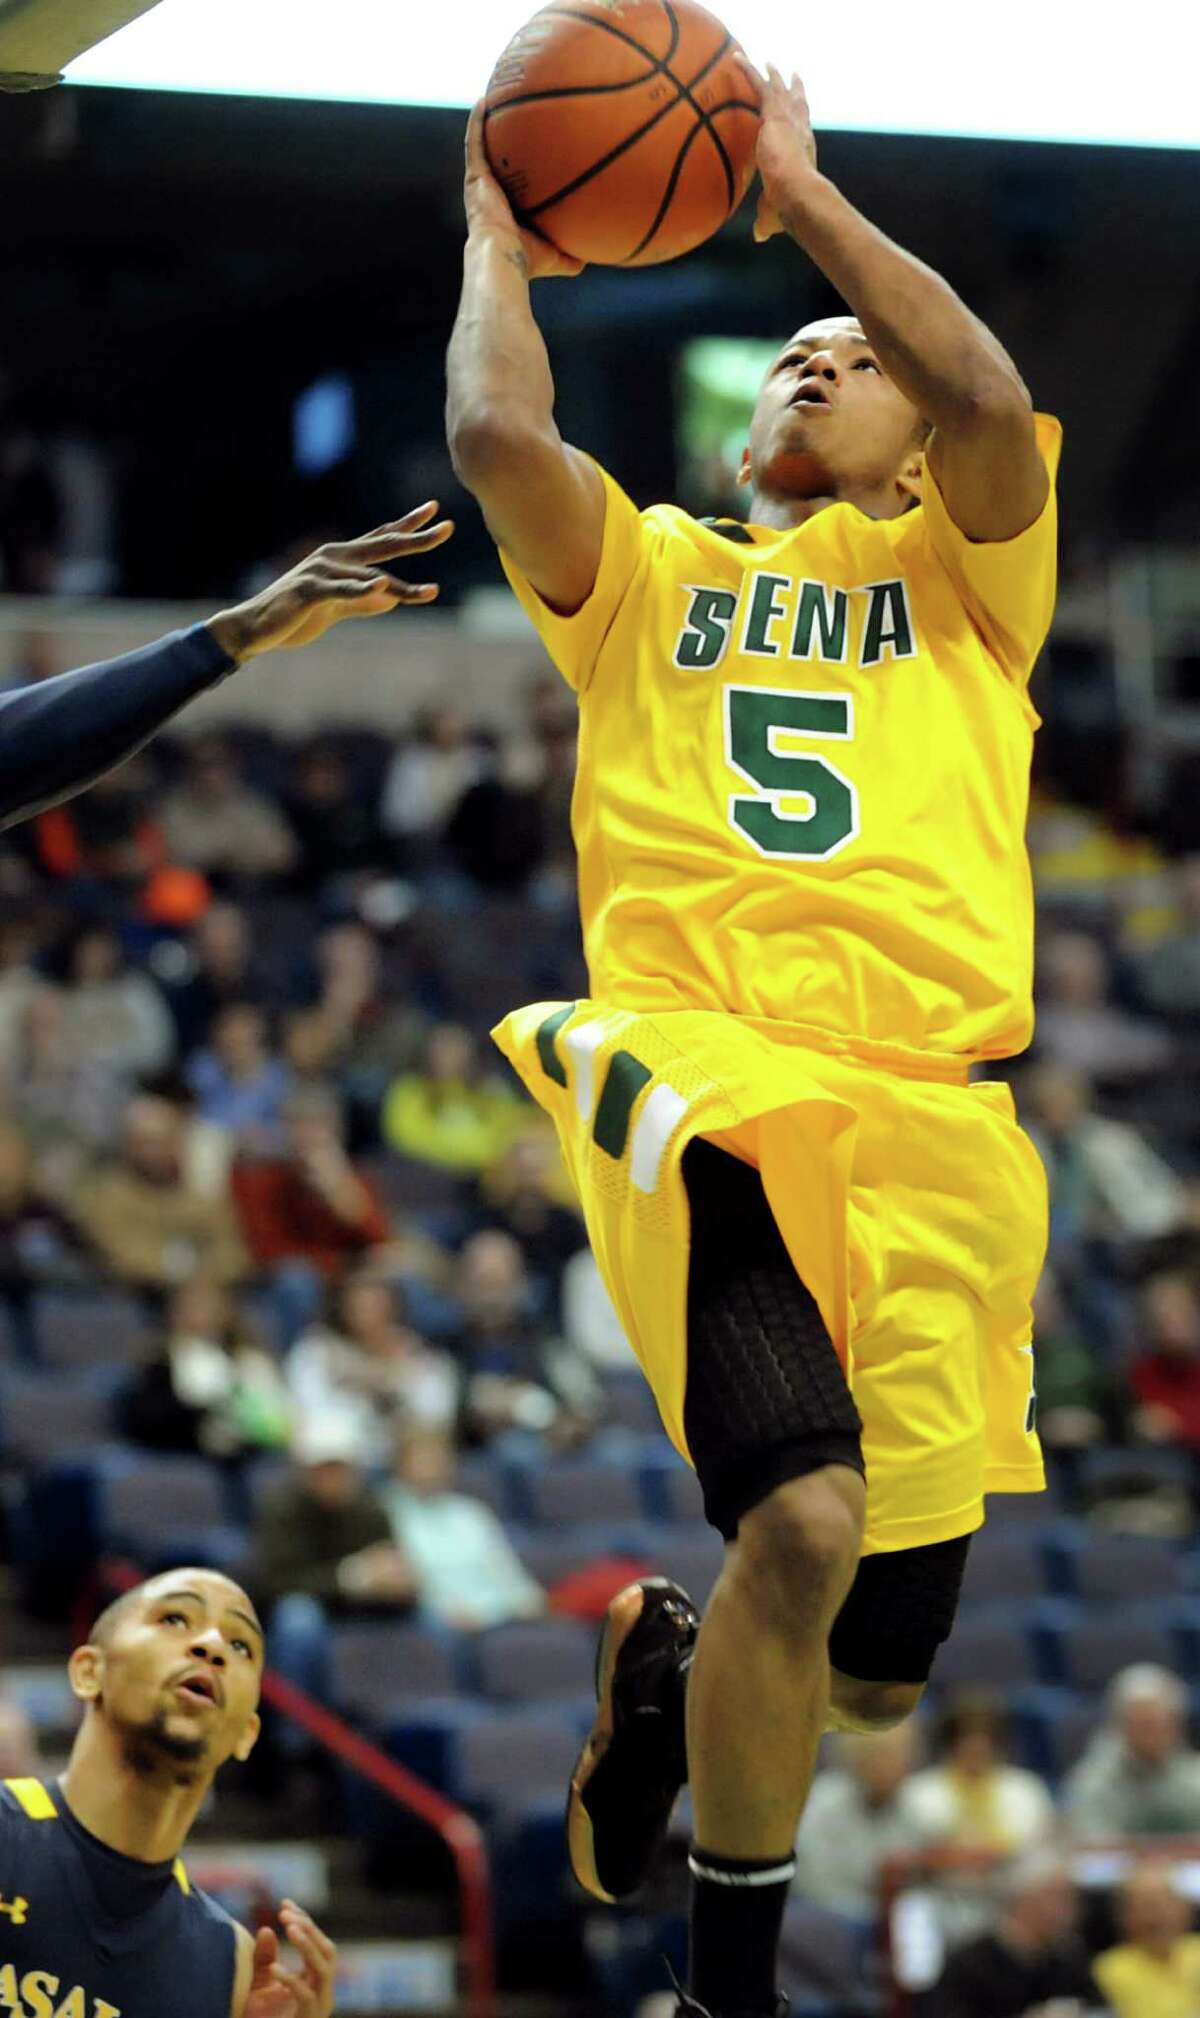 Siena's Evan Hymes (5) goes to the hoop during their basketball game against LaSalle on Saturday, Dec. 29, 2012, at Times Union Center in Albany, N.Y. (Cindy Schultz / Times Union)